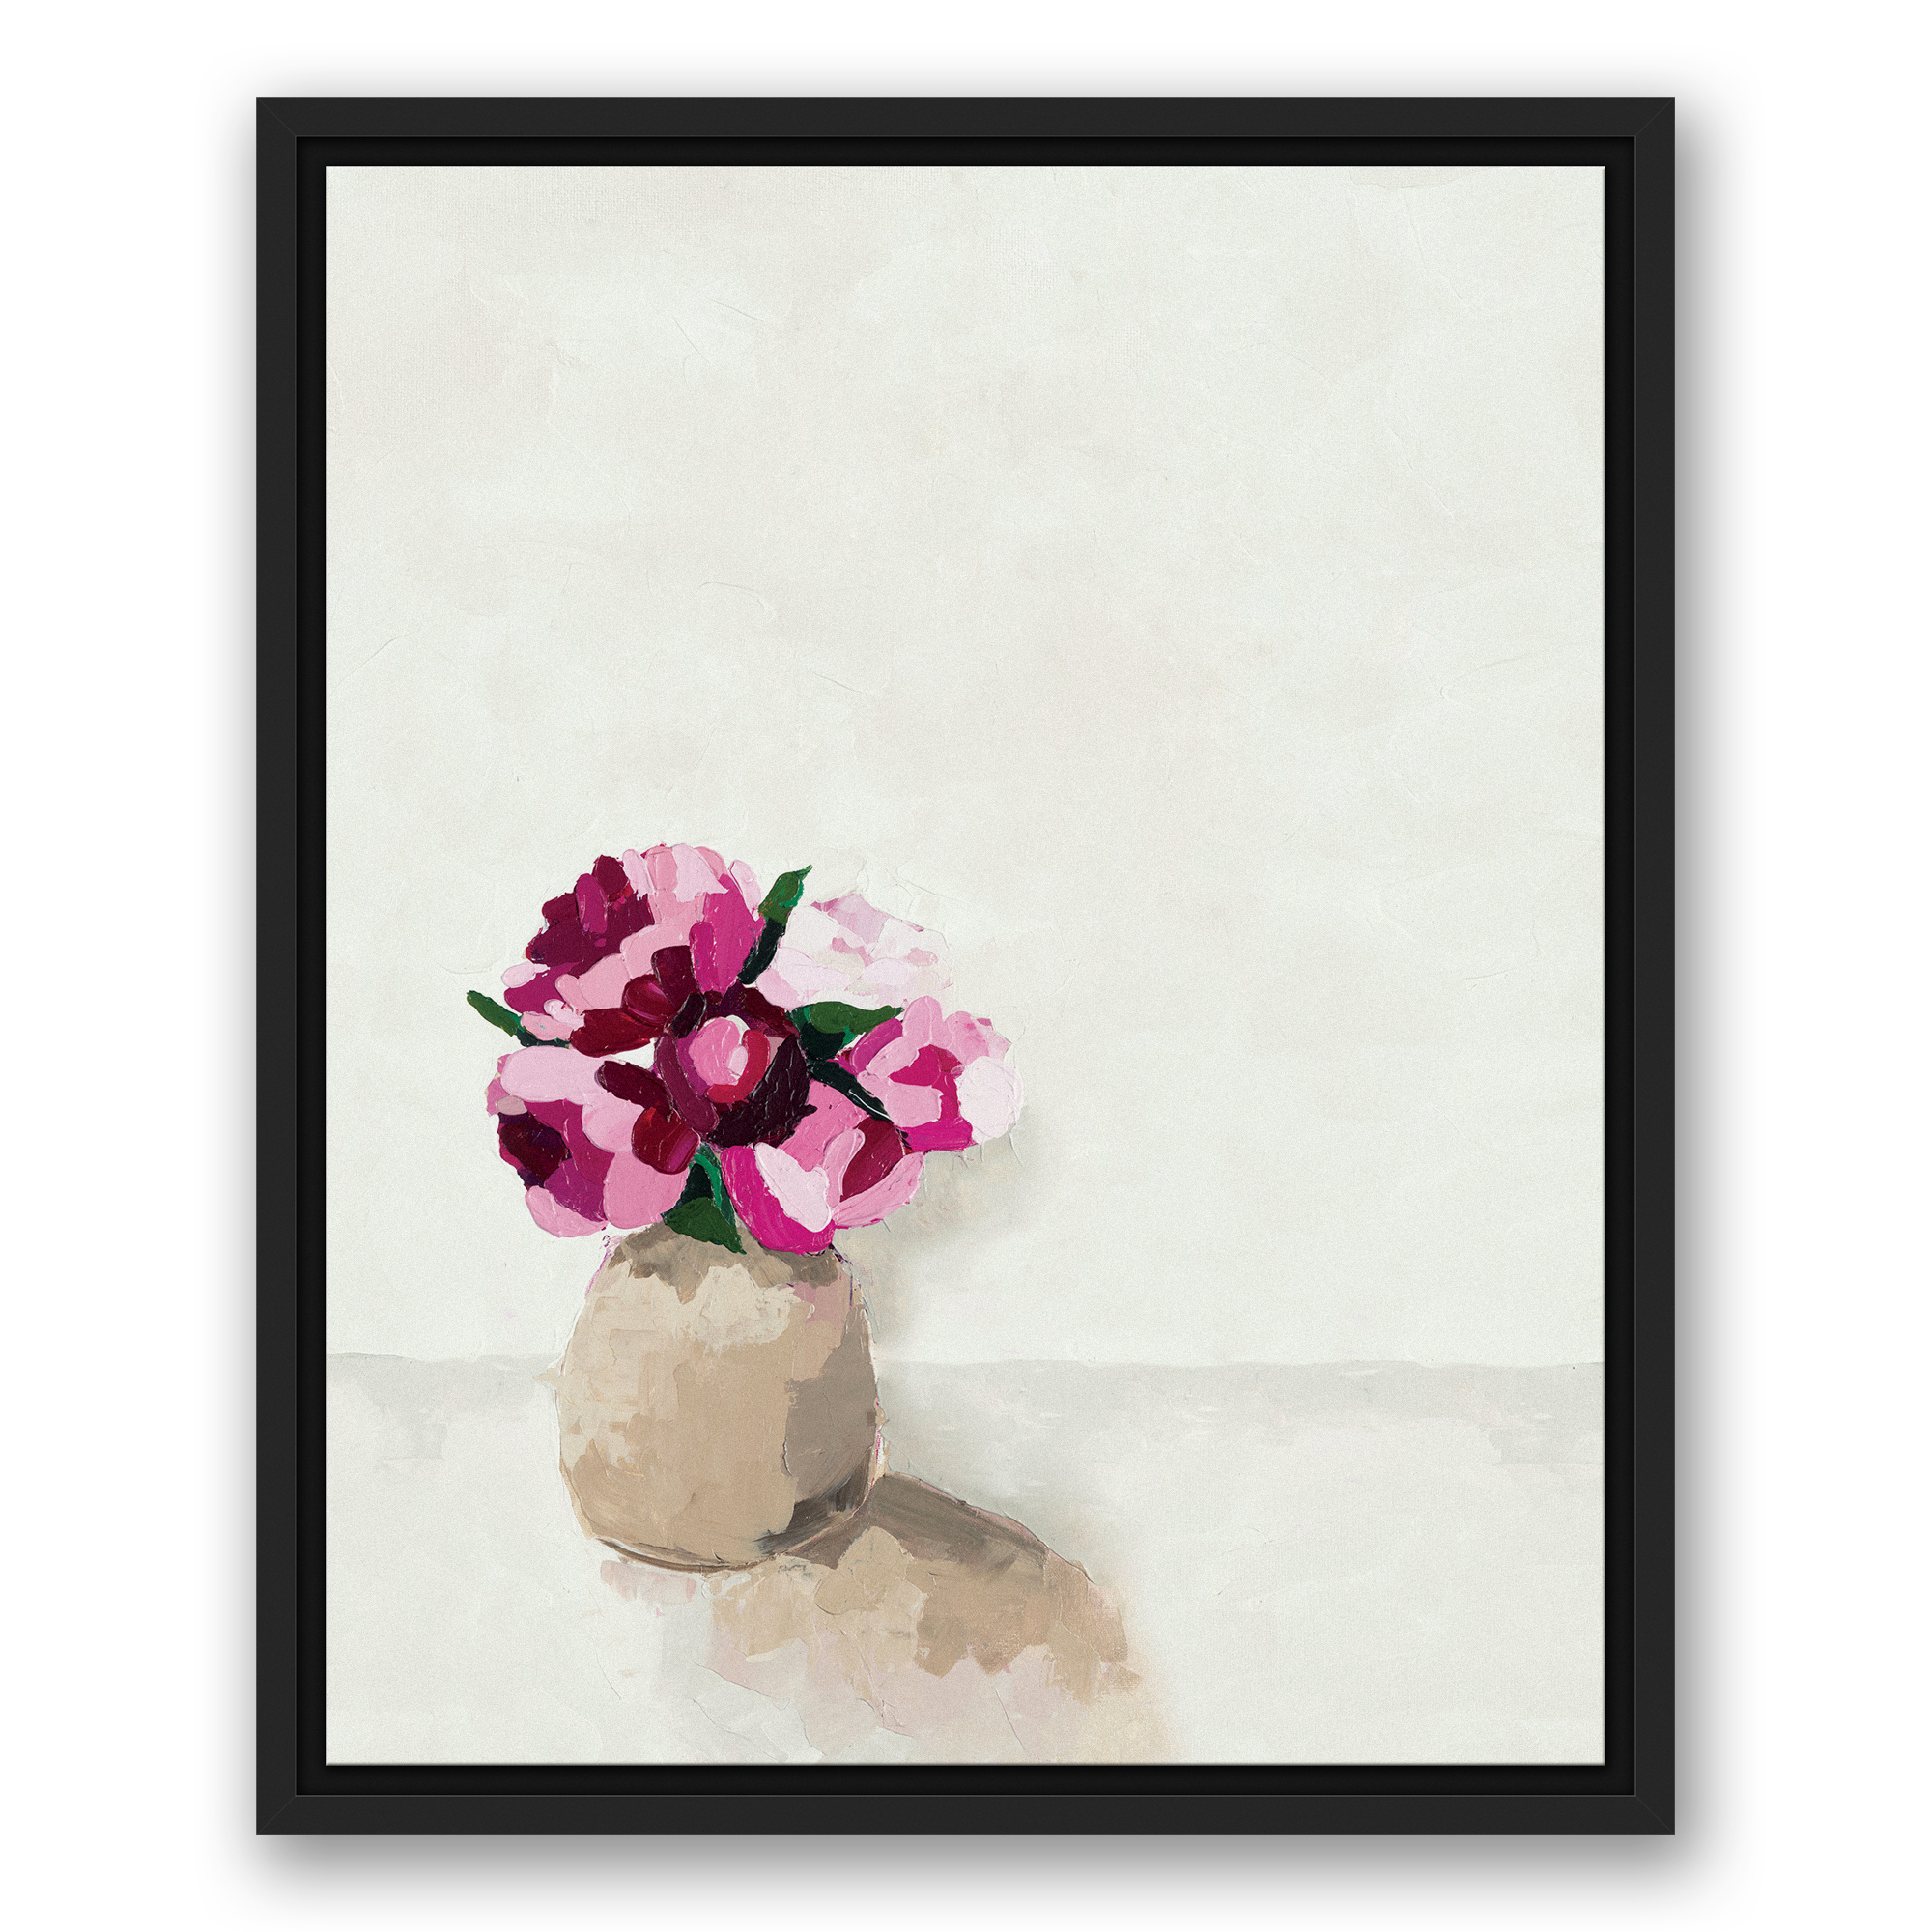 Wrought Studio 'pink Flowers In A Vase' Framed Print On Canvas Throughout Latest 3 Piece Wall Decor Sets By Wrought Studio (Gallery 19 of 20)